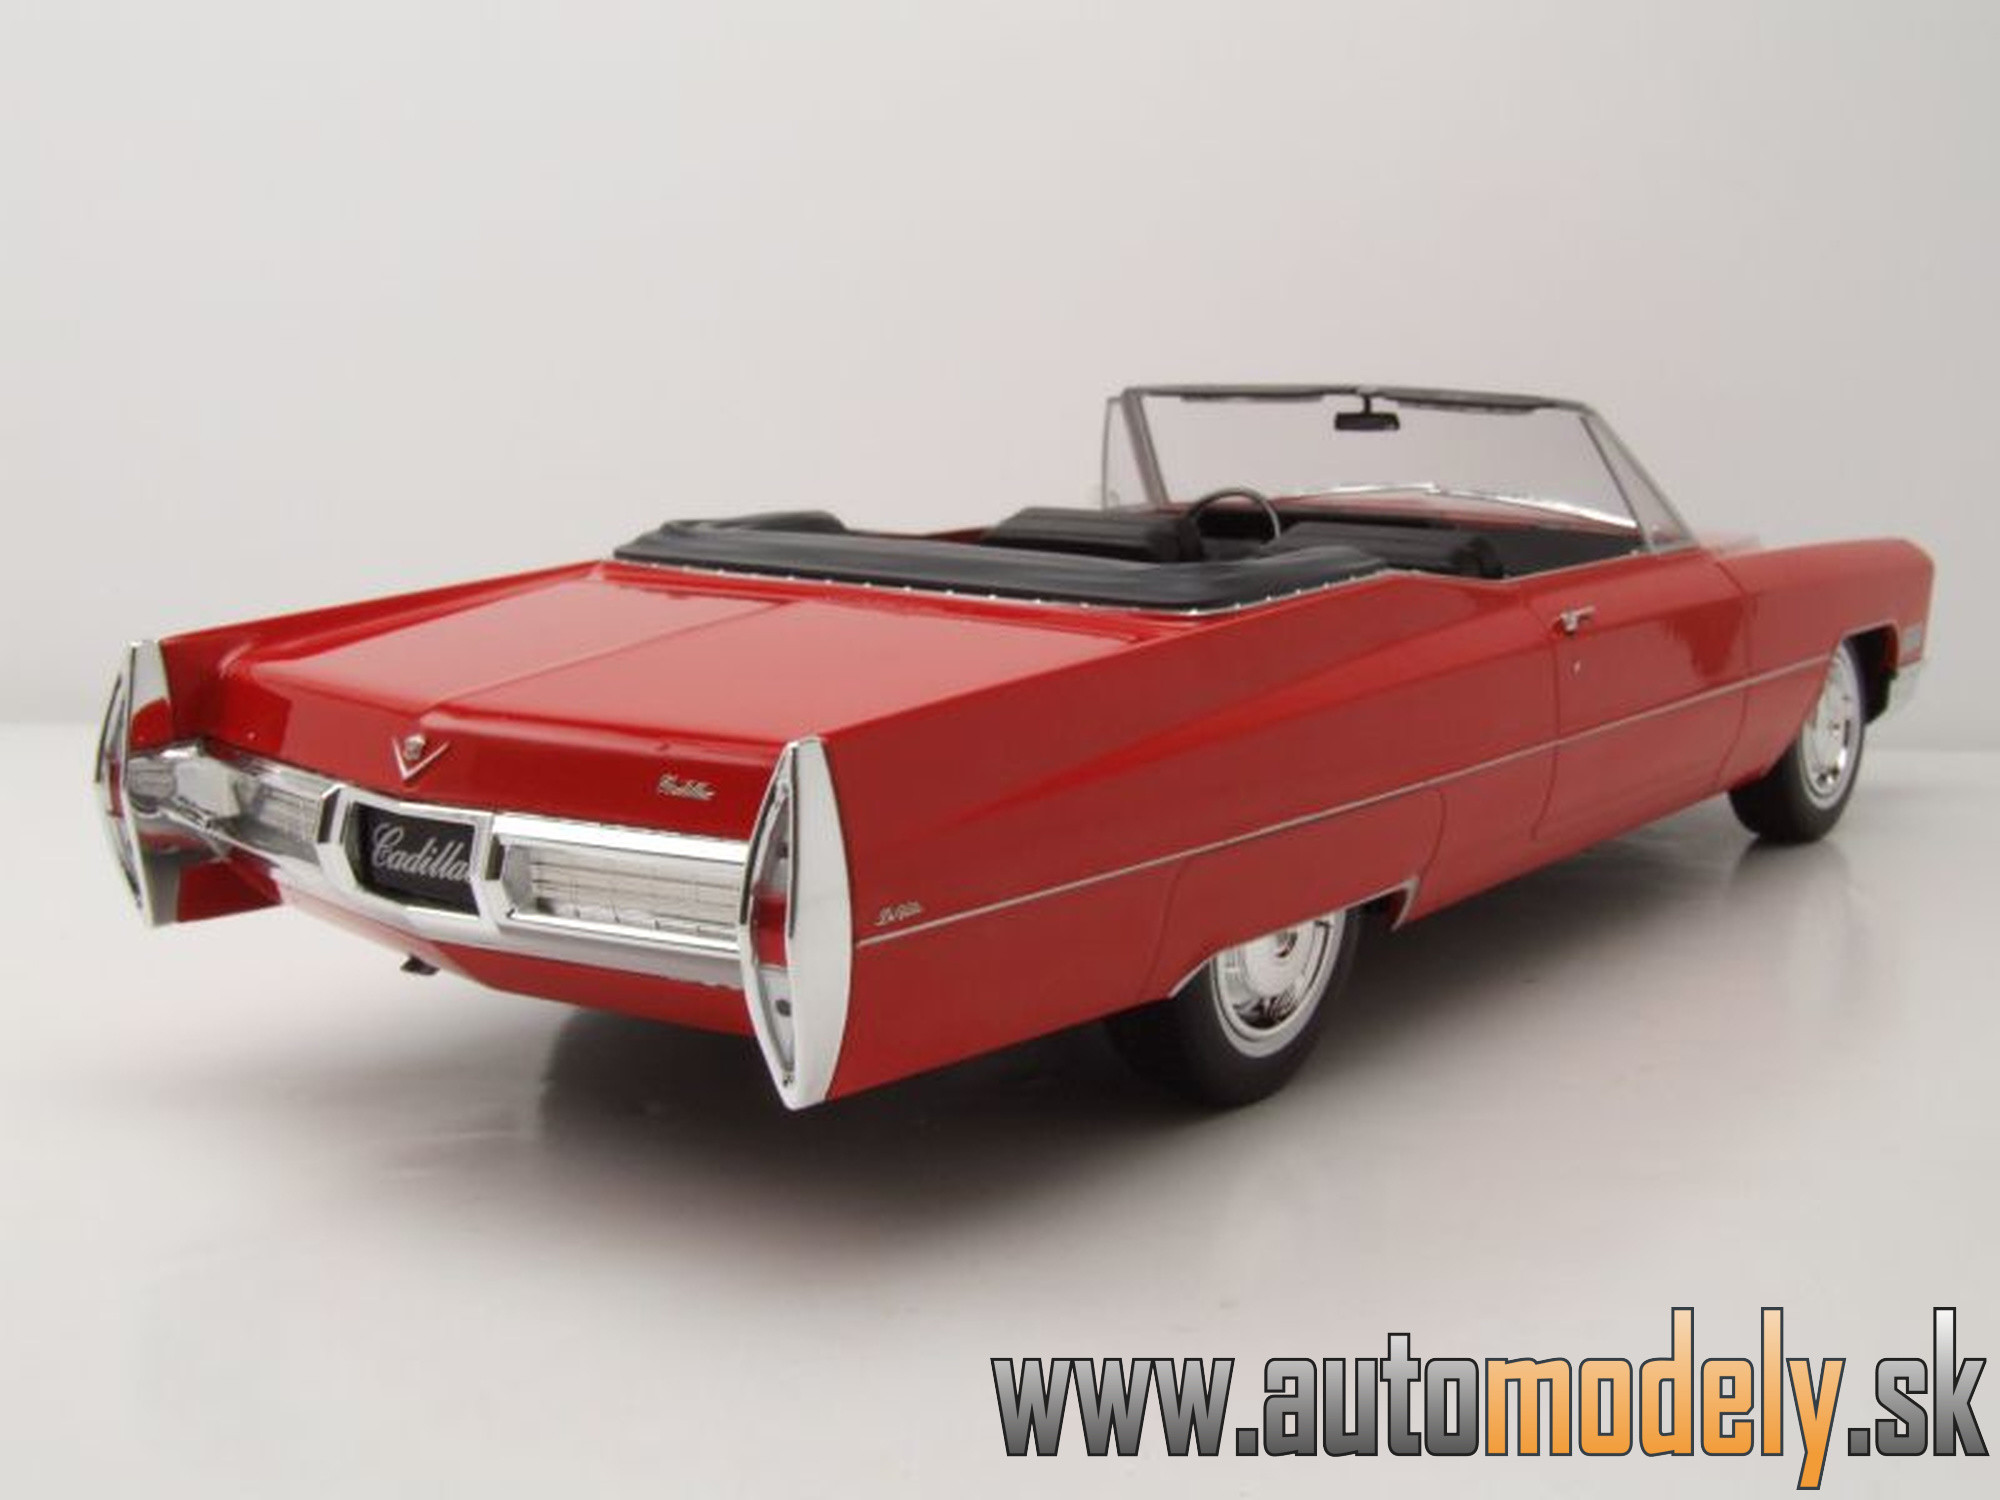 KK Scale - Cadillac Deville Convertible - red - 1:18